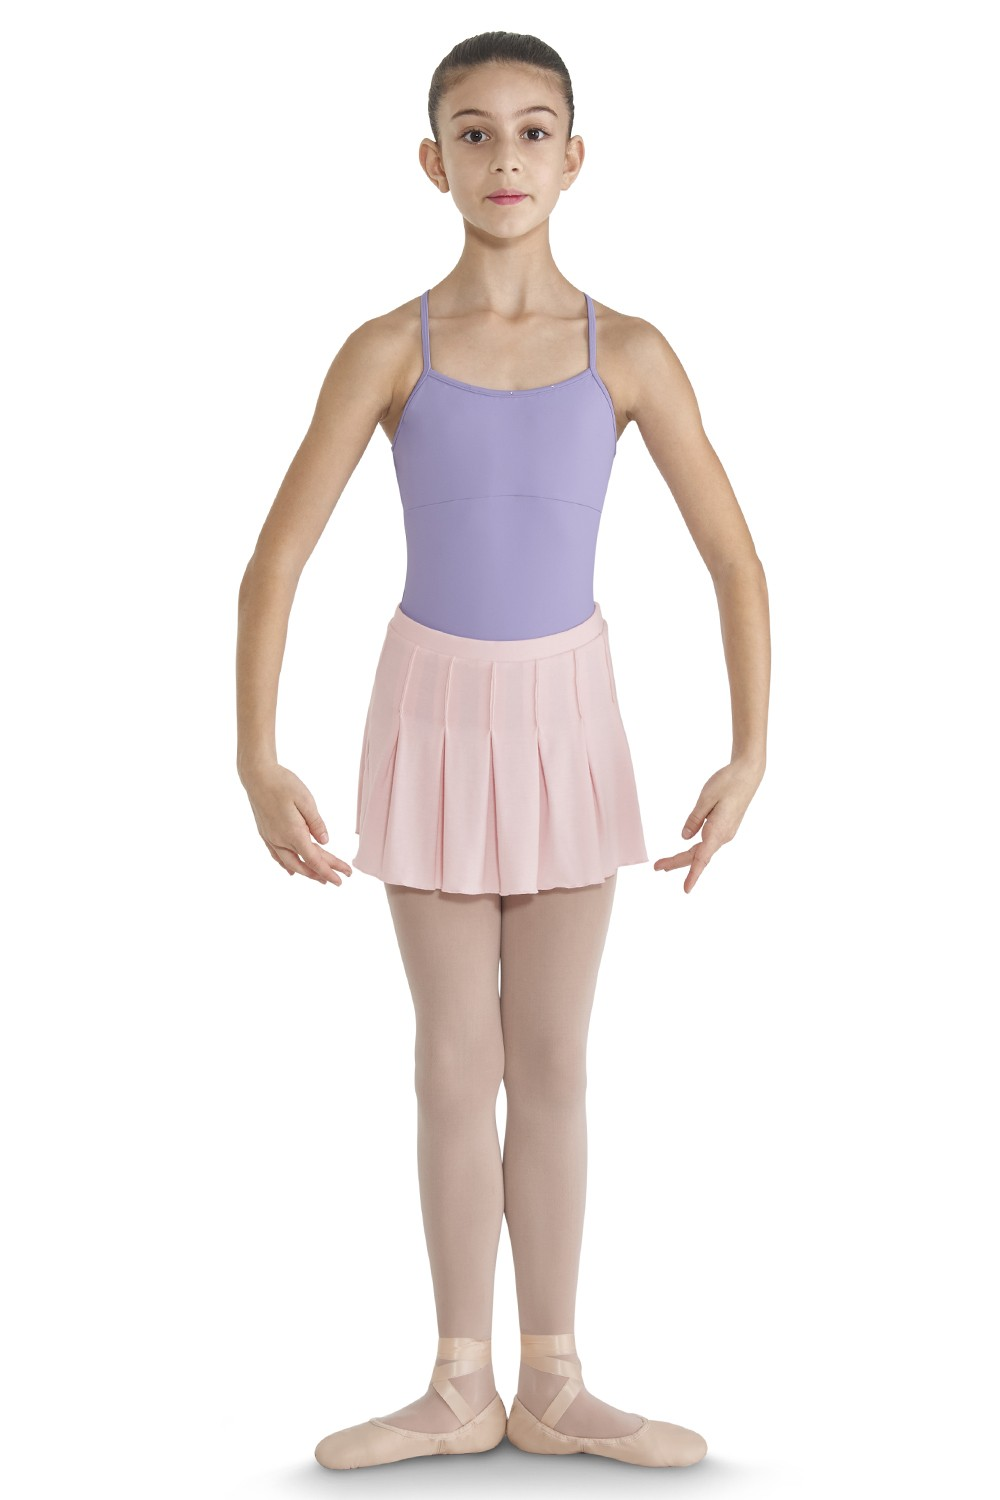 Children's Dance Skirts